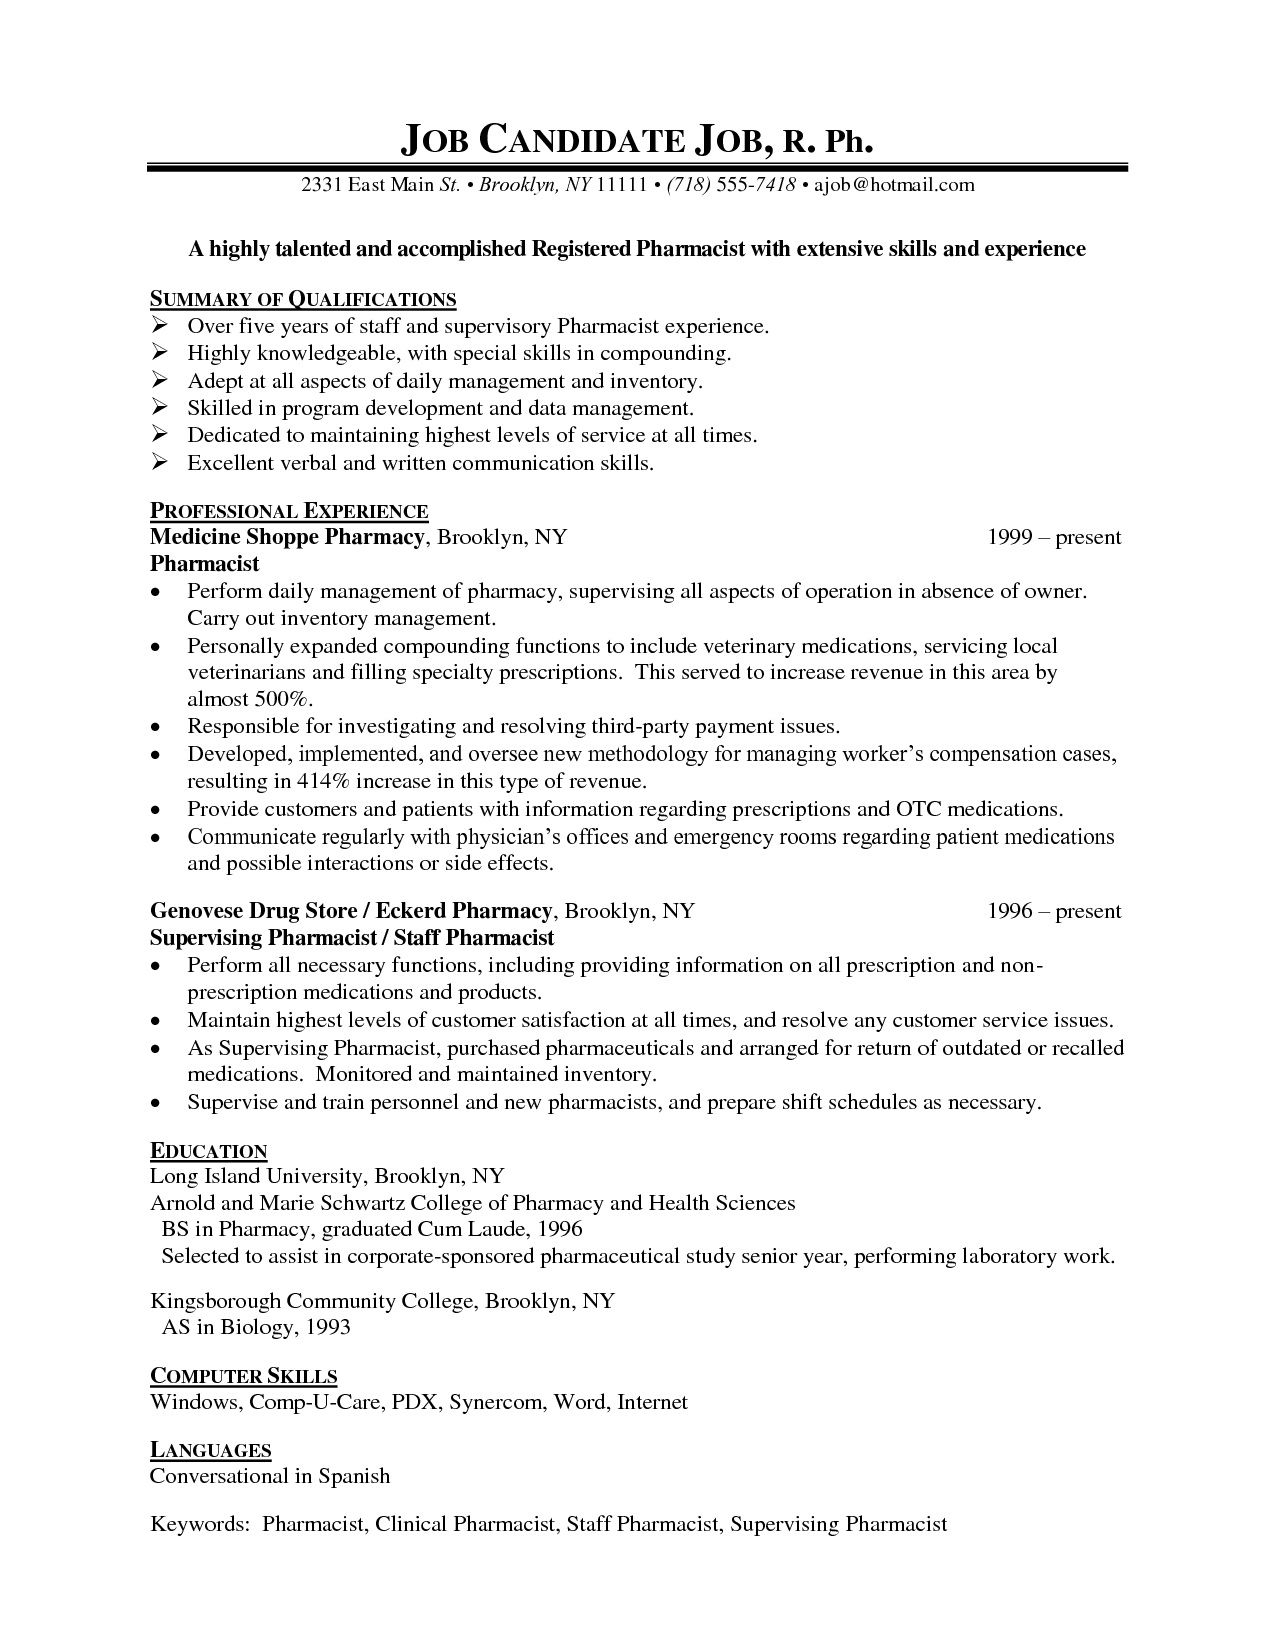 ambulatory care pharmacist sample resume 16 cashier cover letter sample job  and resume template.